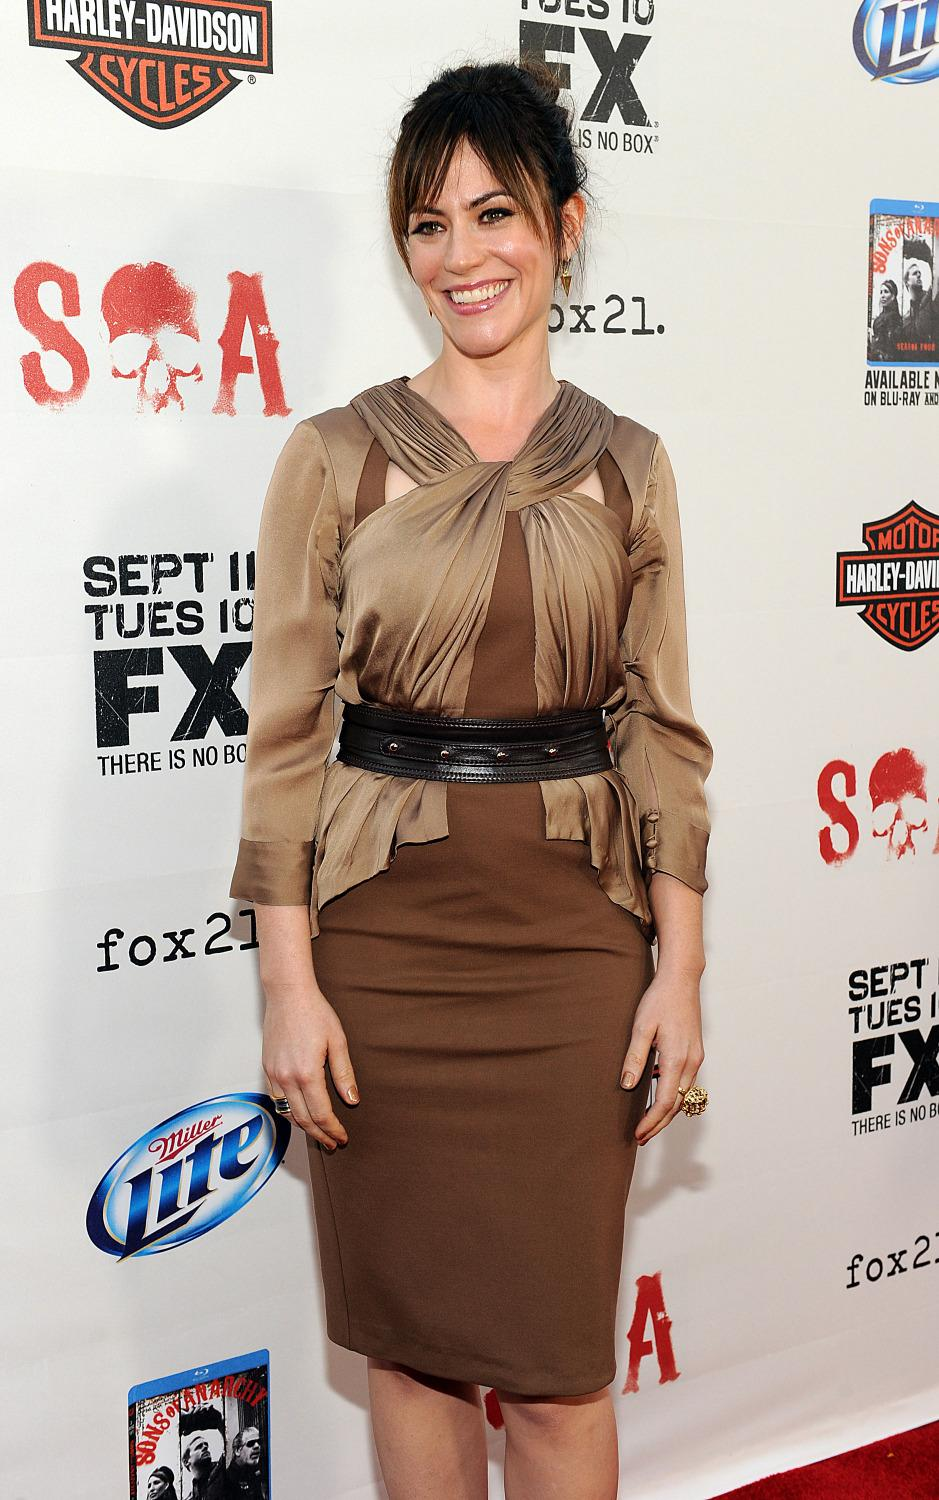 Maggie siff from sons of anarchy 10